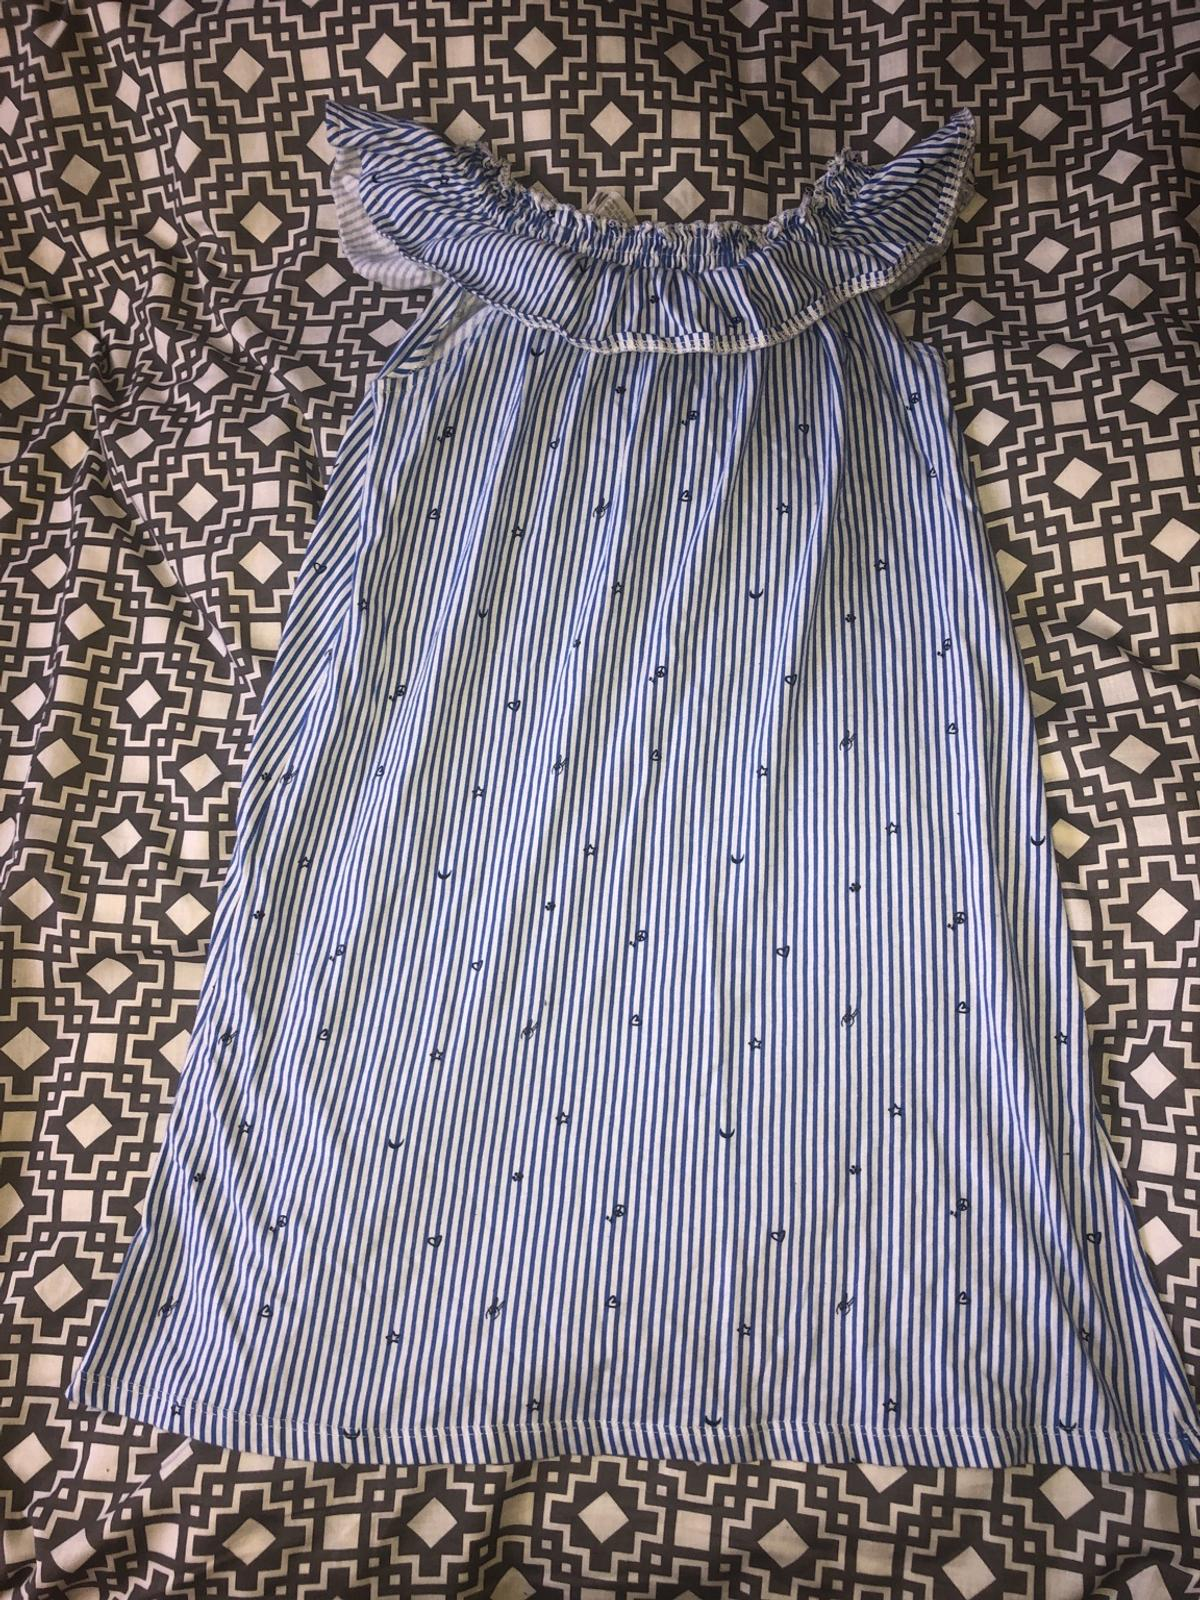 Off the shoulder dress blue and white striped with little hearts stars and moons  Age 11-12  No holding, on other sites too!